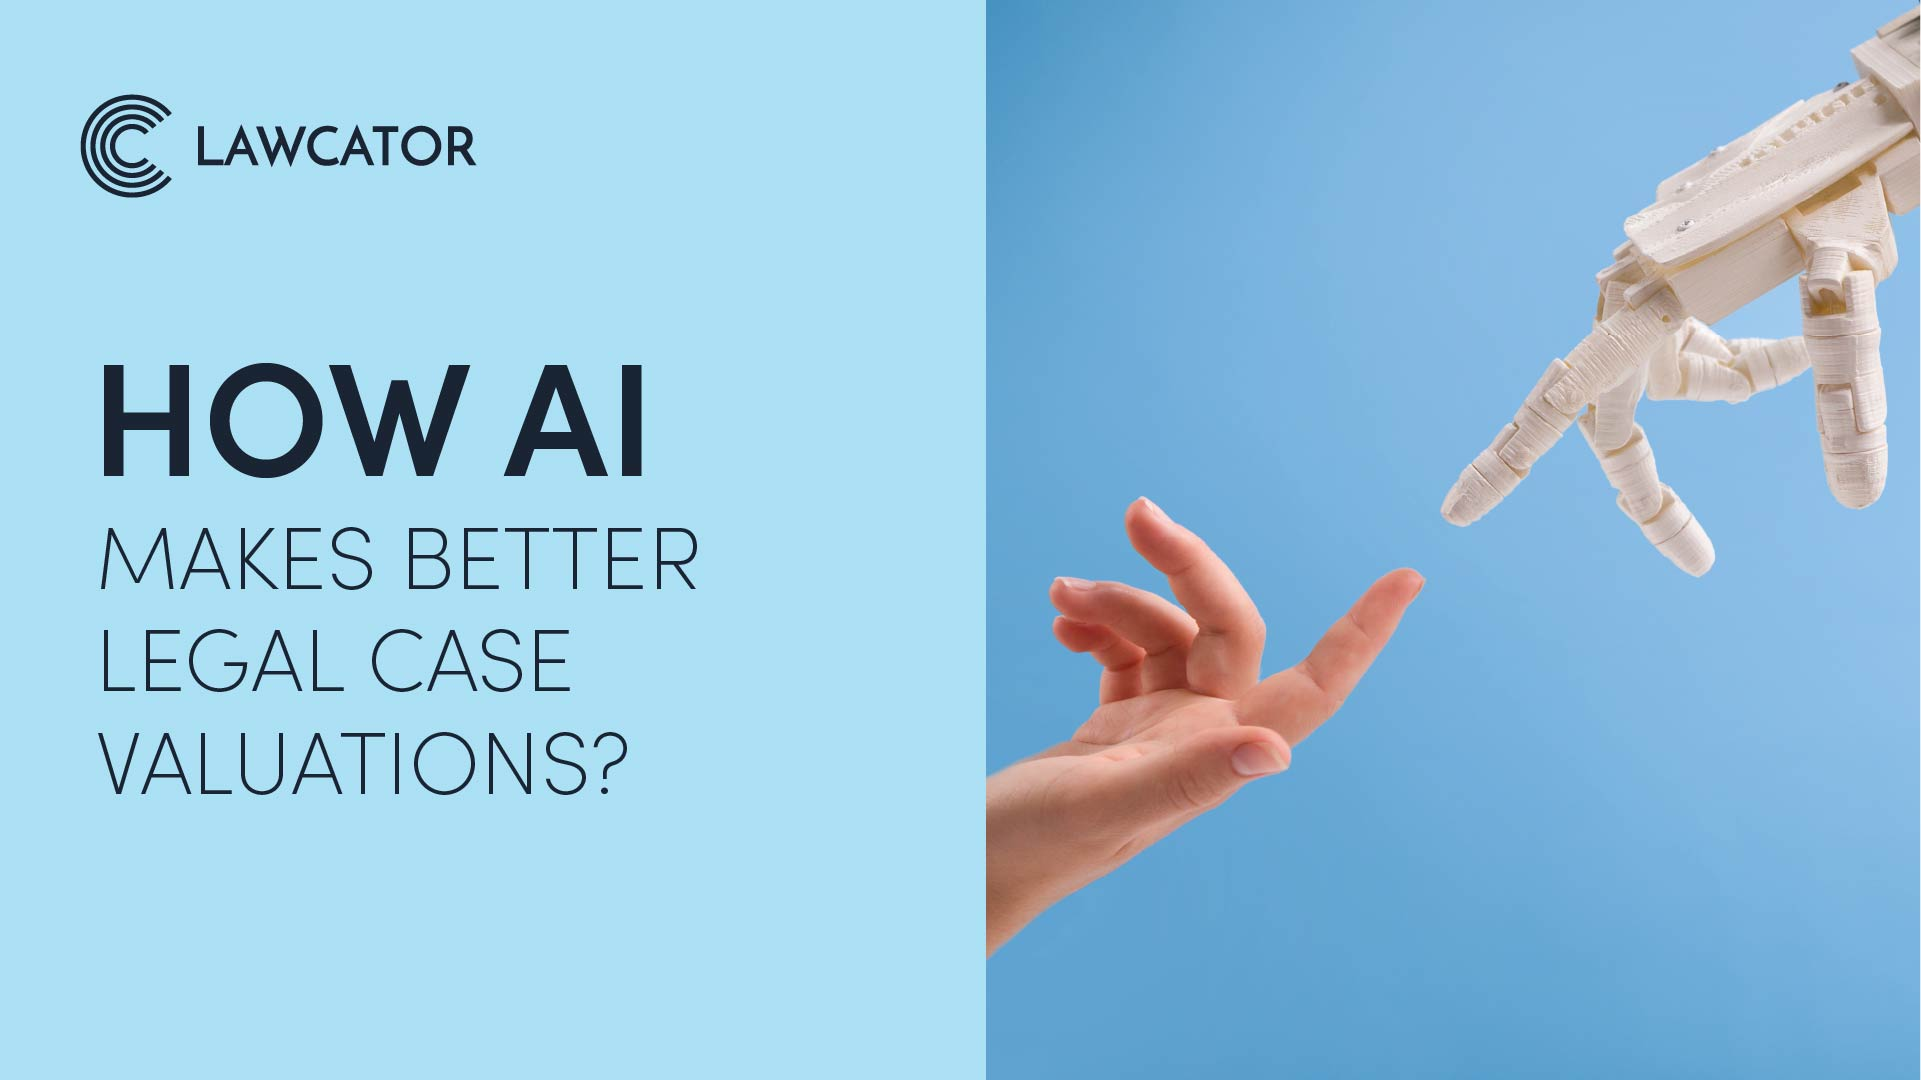 How AI makes better legal case valuations?